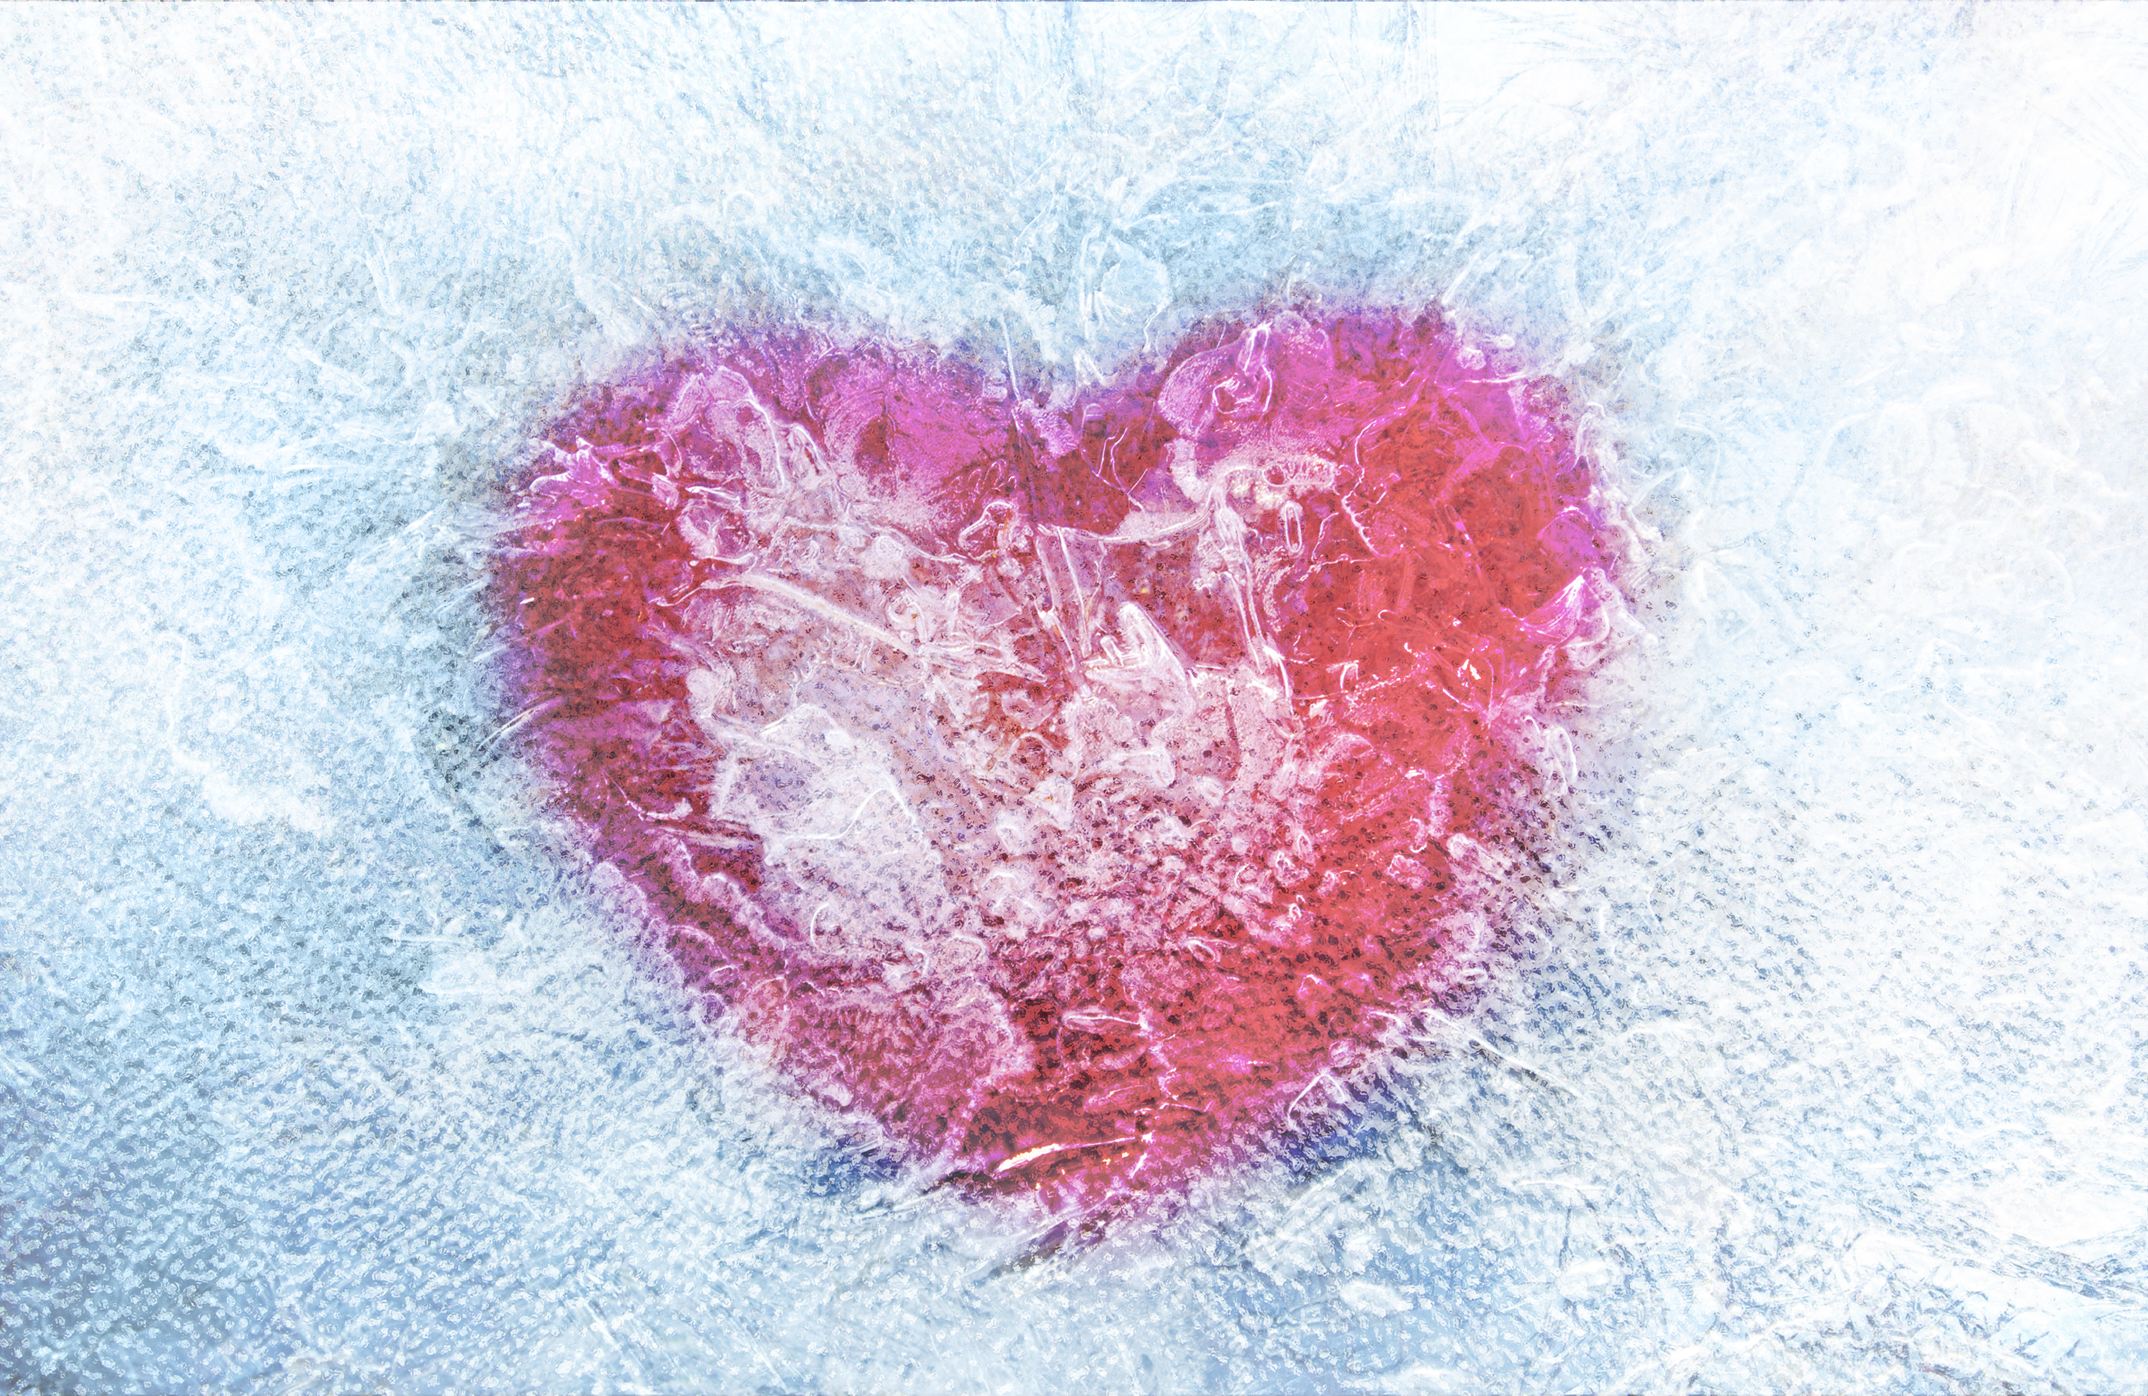 Frozen heart Illustration. Valentine's Day. Love concept